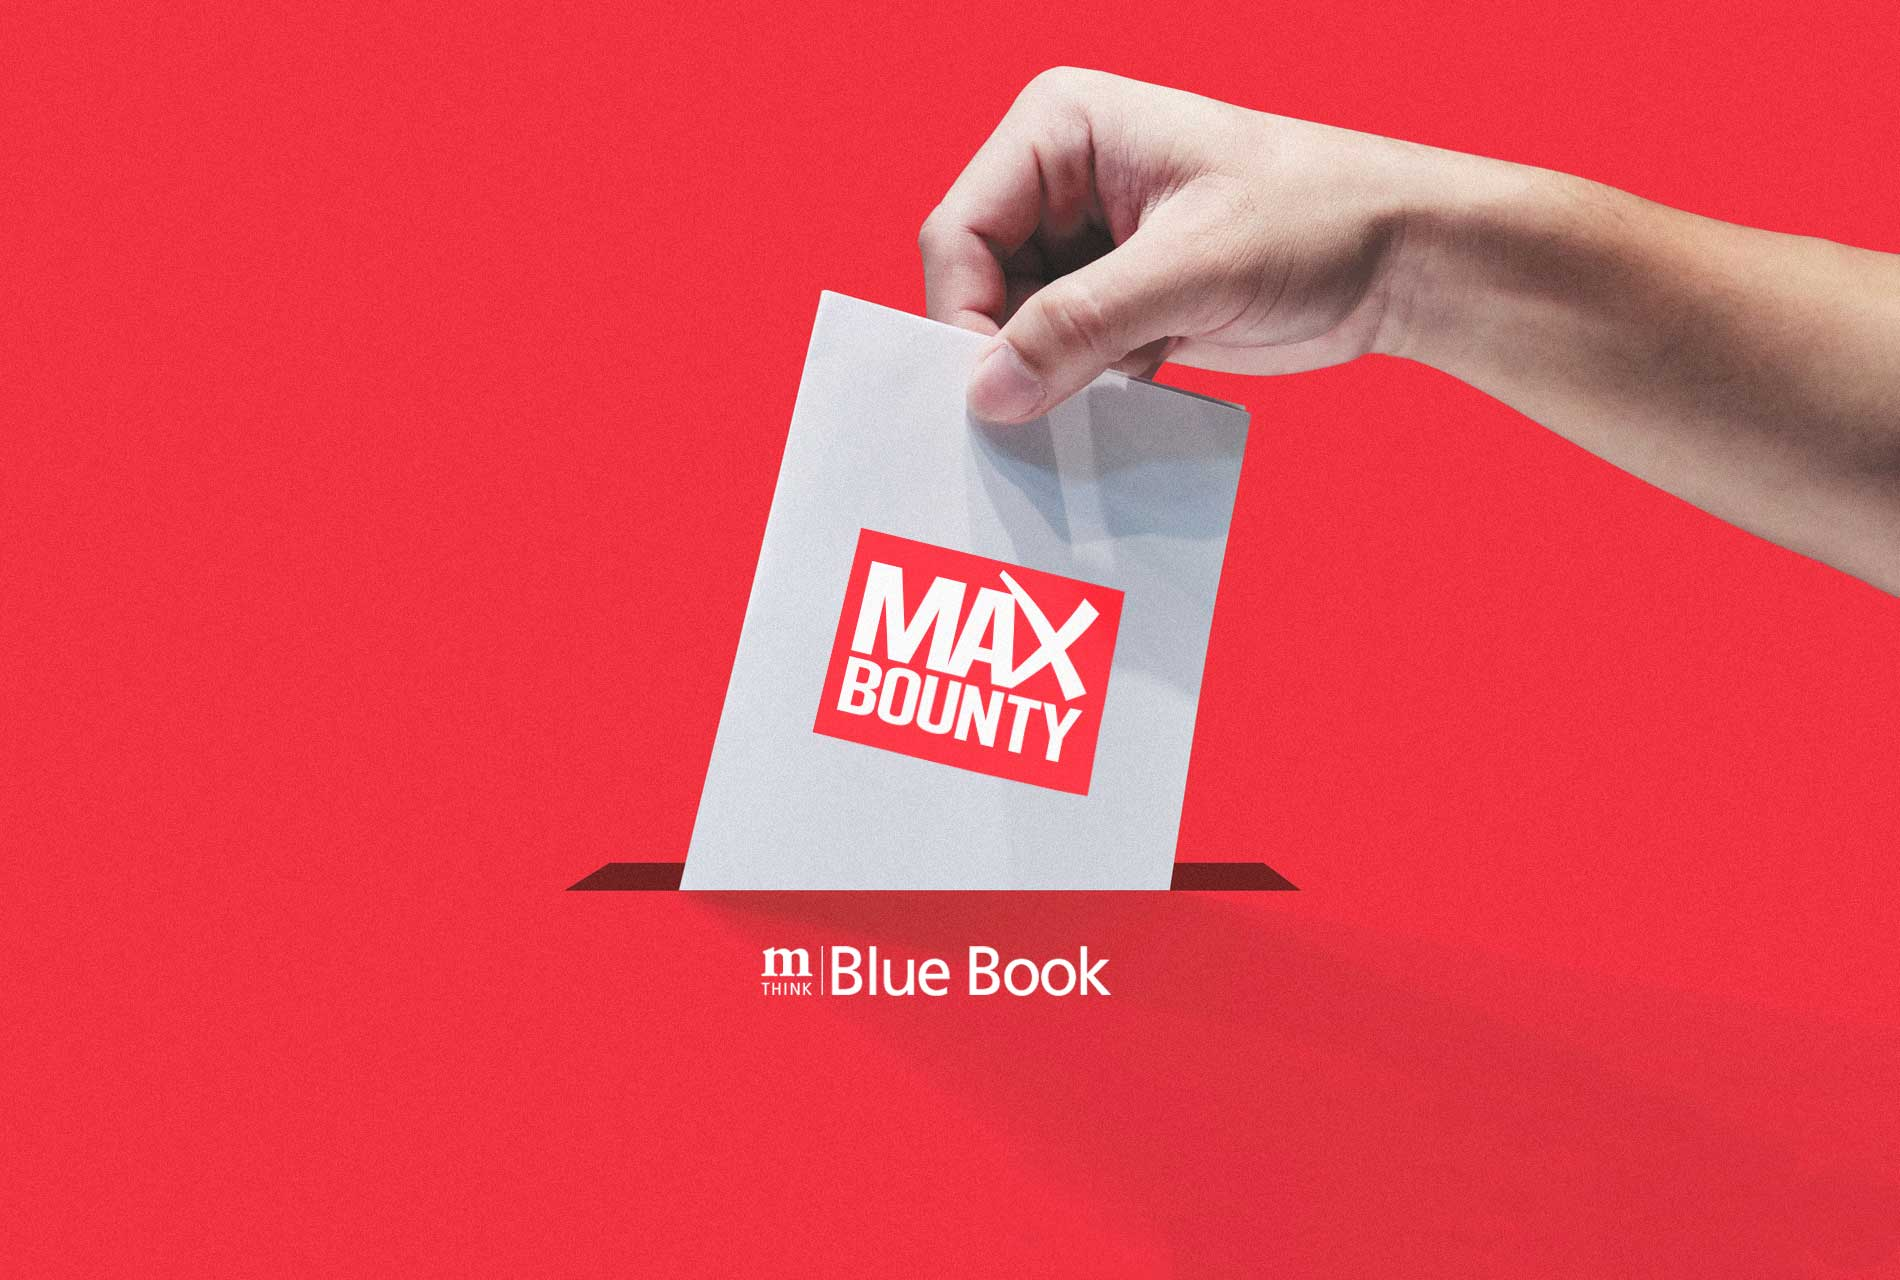 Cast Your Vote for MaxBounty as your #1 Network